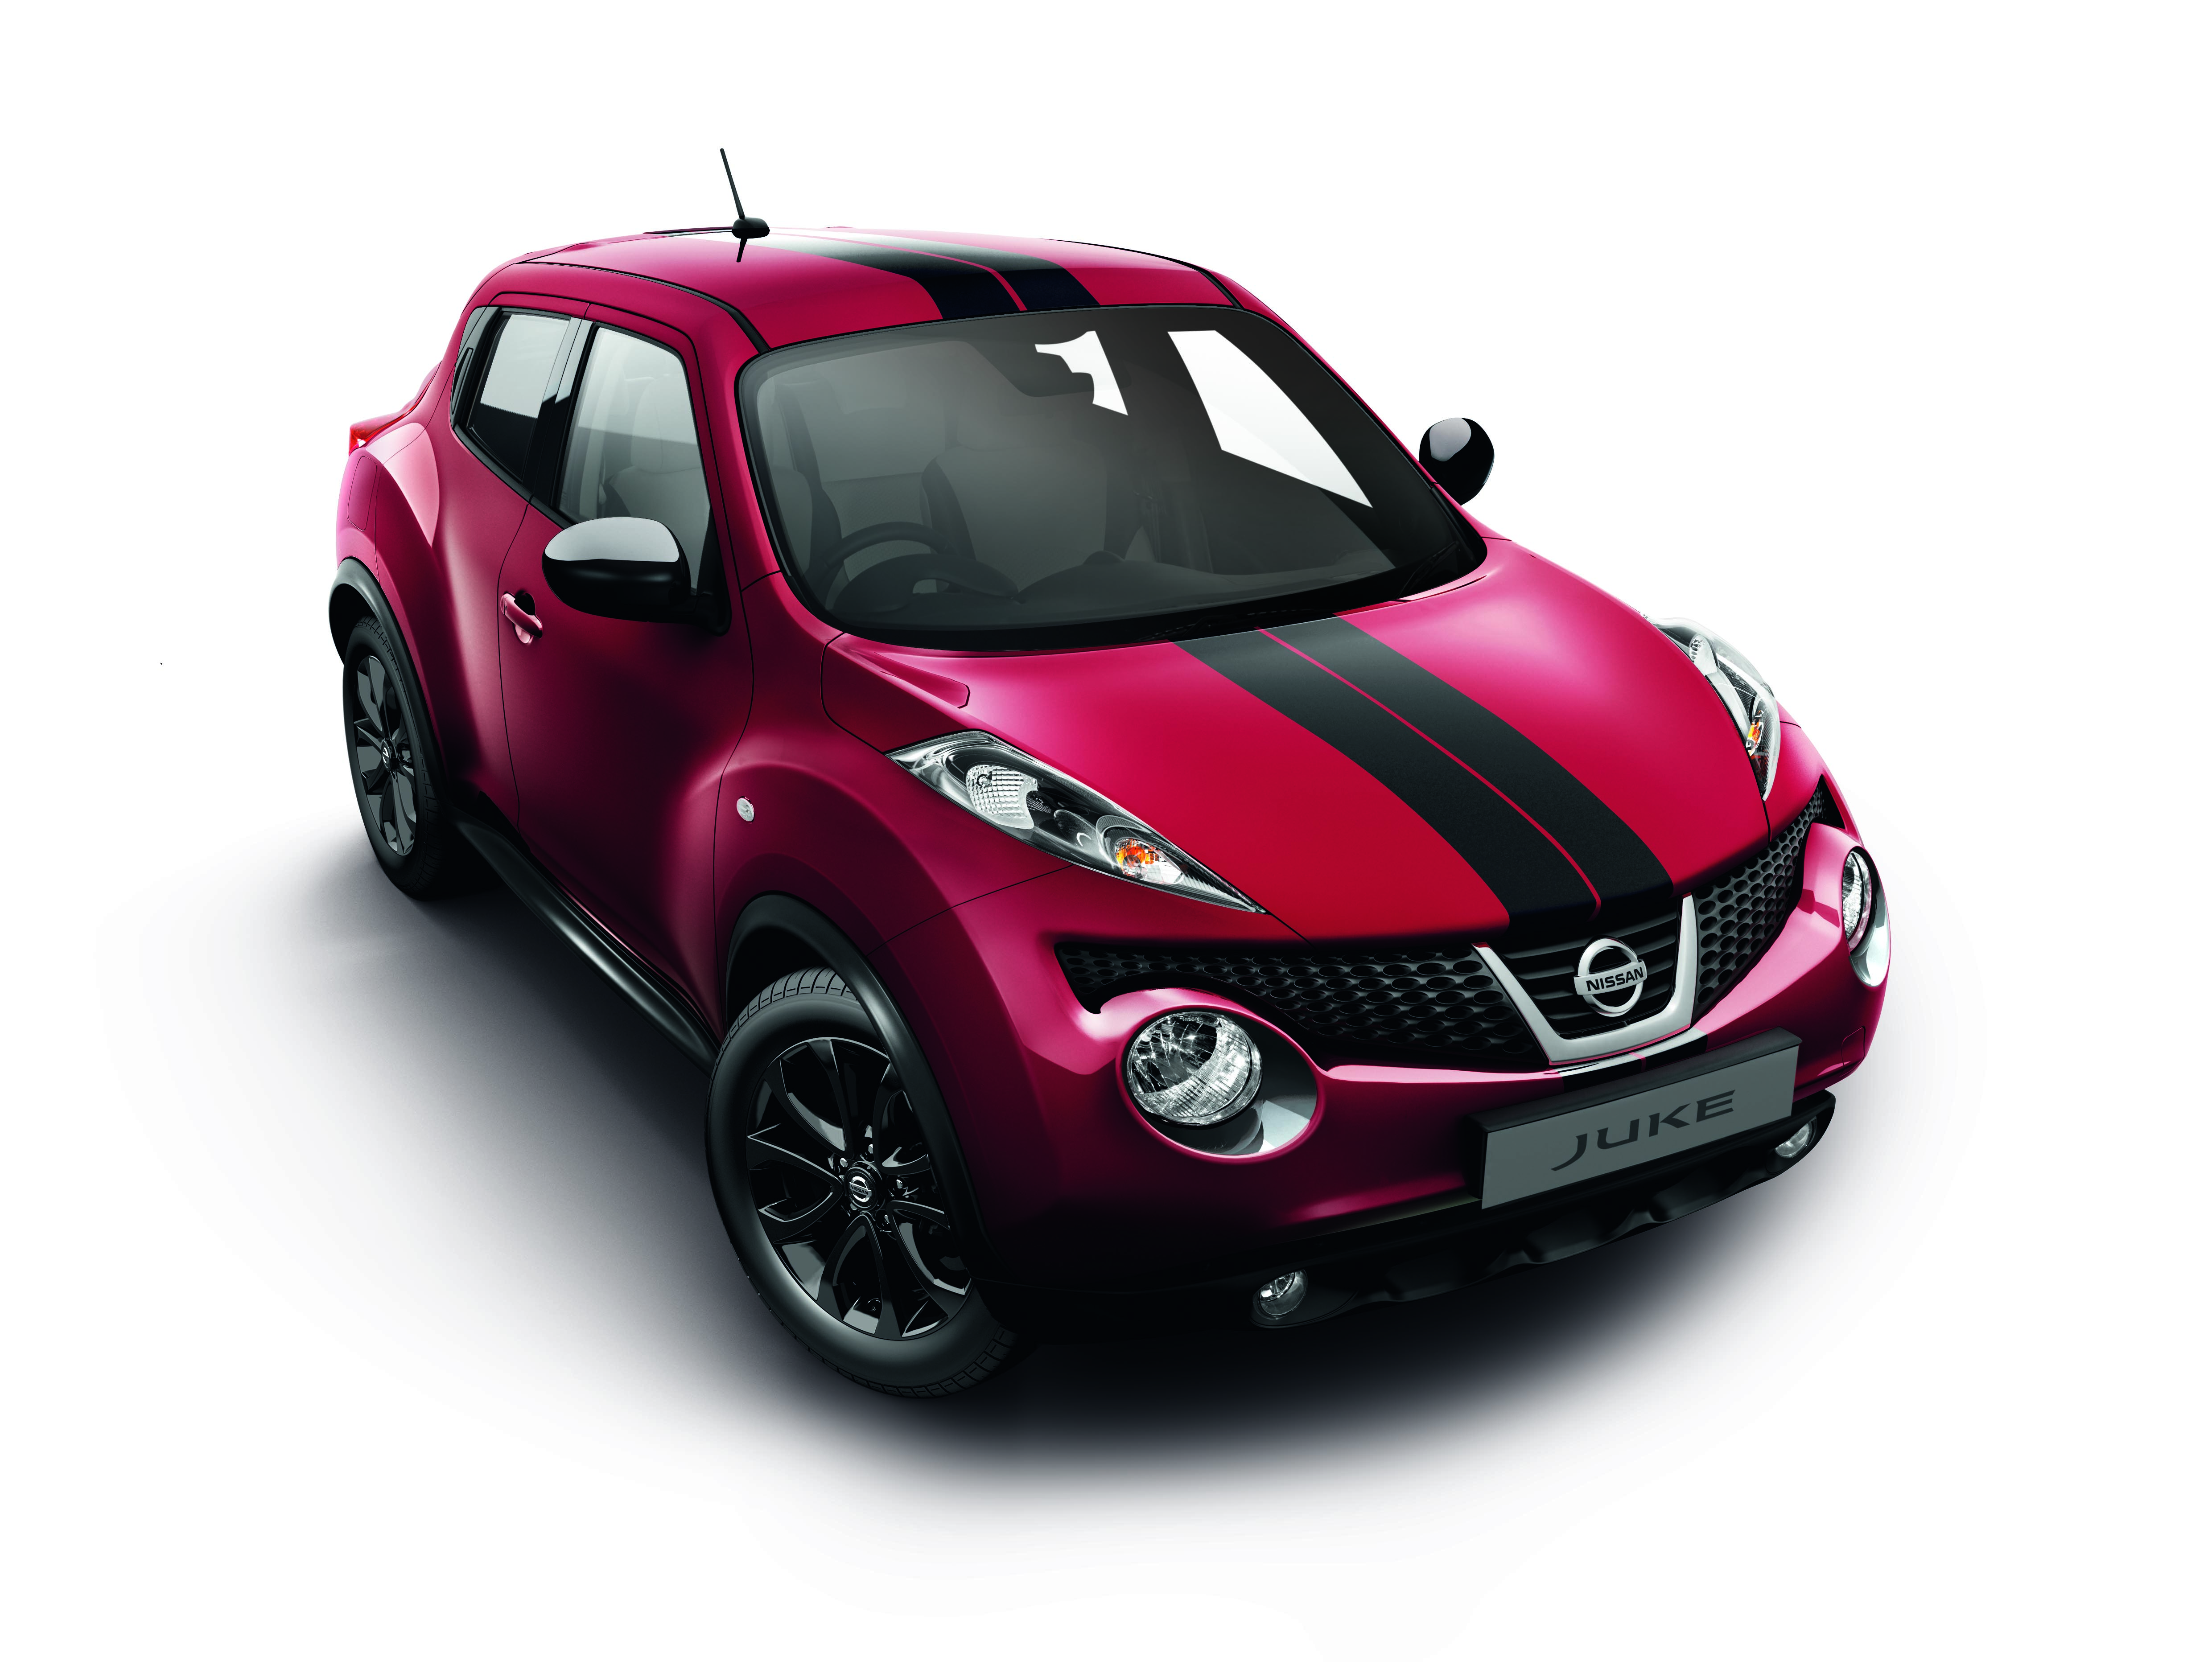 used of news nissan r jukes make the insane juke reportedly to units planning video